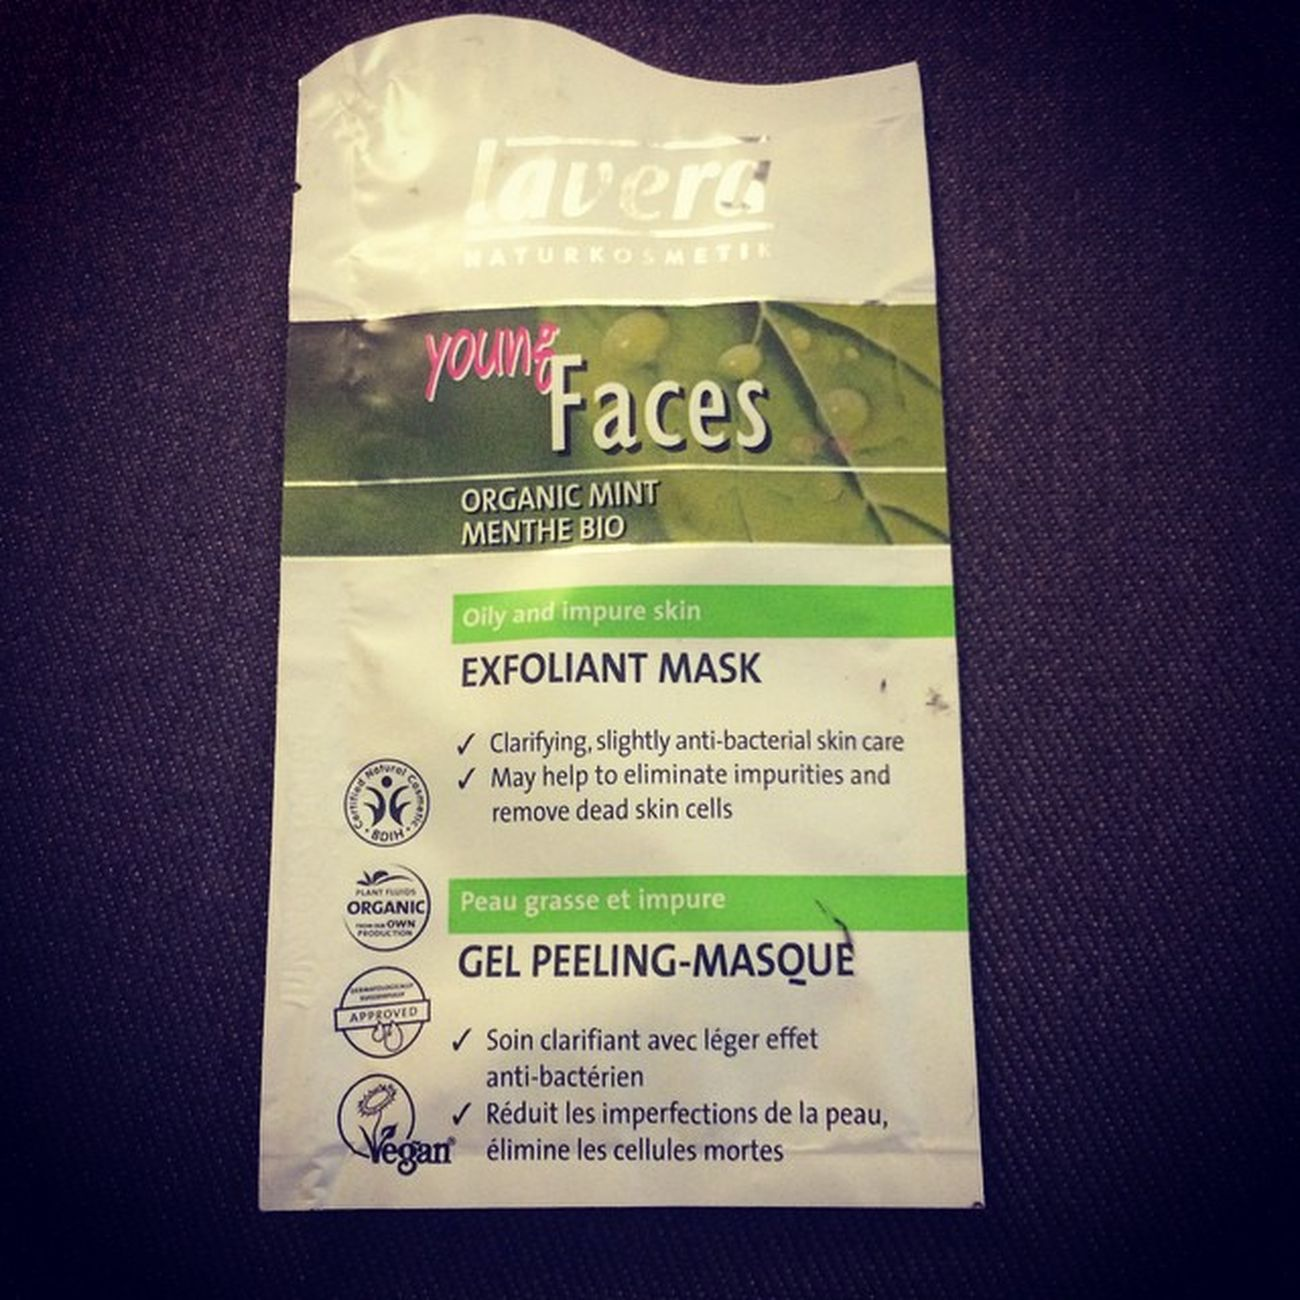 Masque du soir, bonsoir ! LaVera Bio Greenbeauty Mask Vegan Clean Germanbeauty Bioty MademoiselleBio